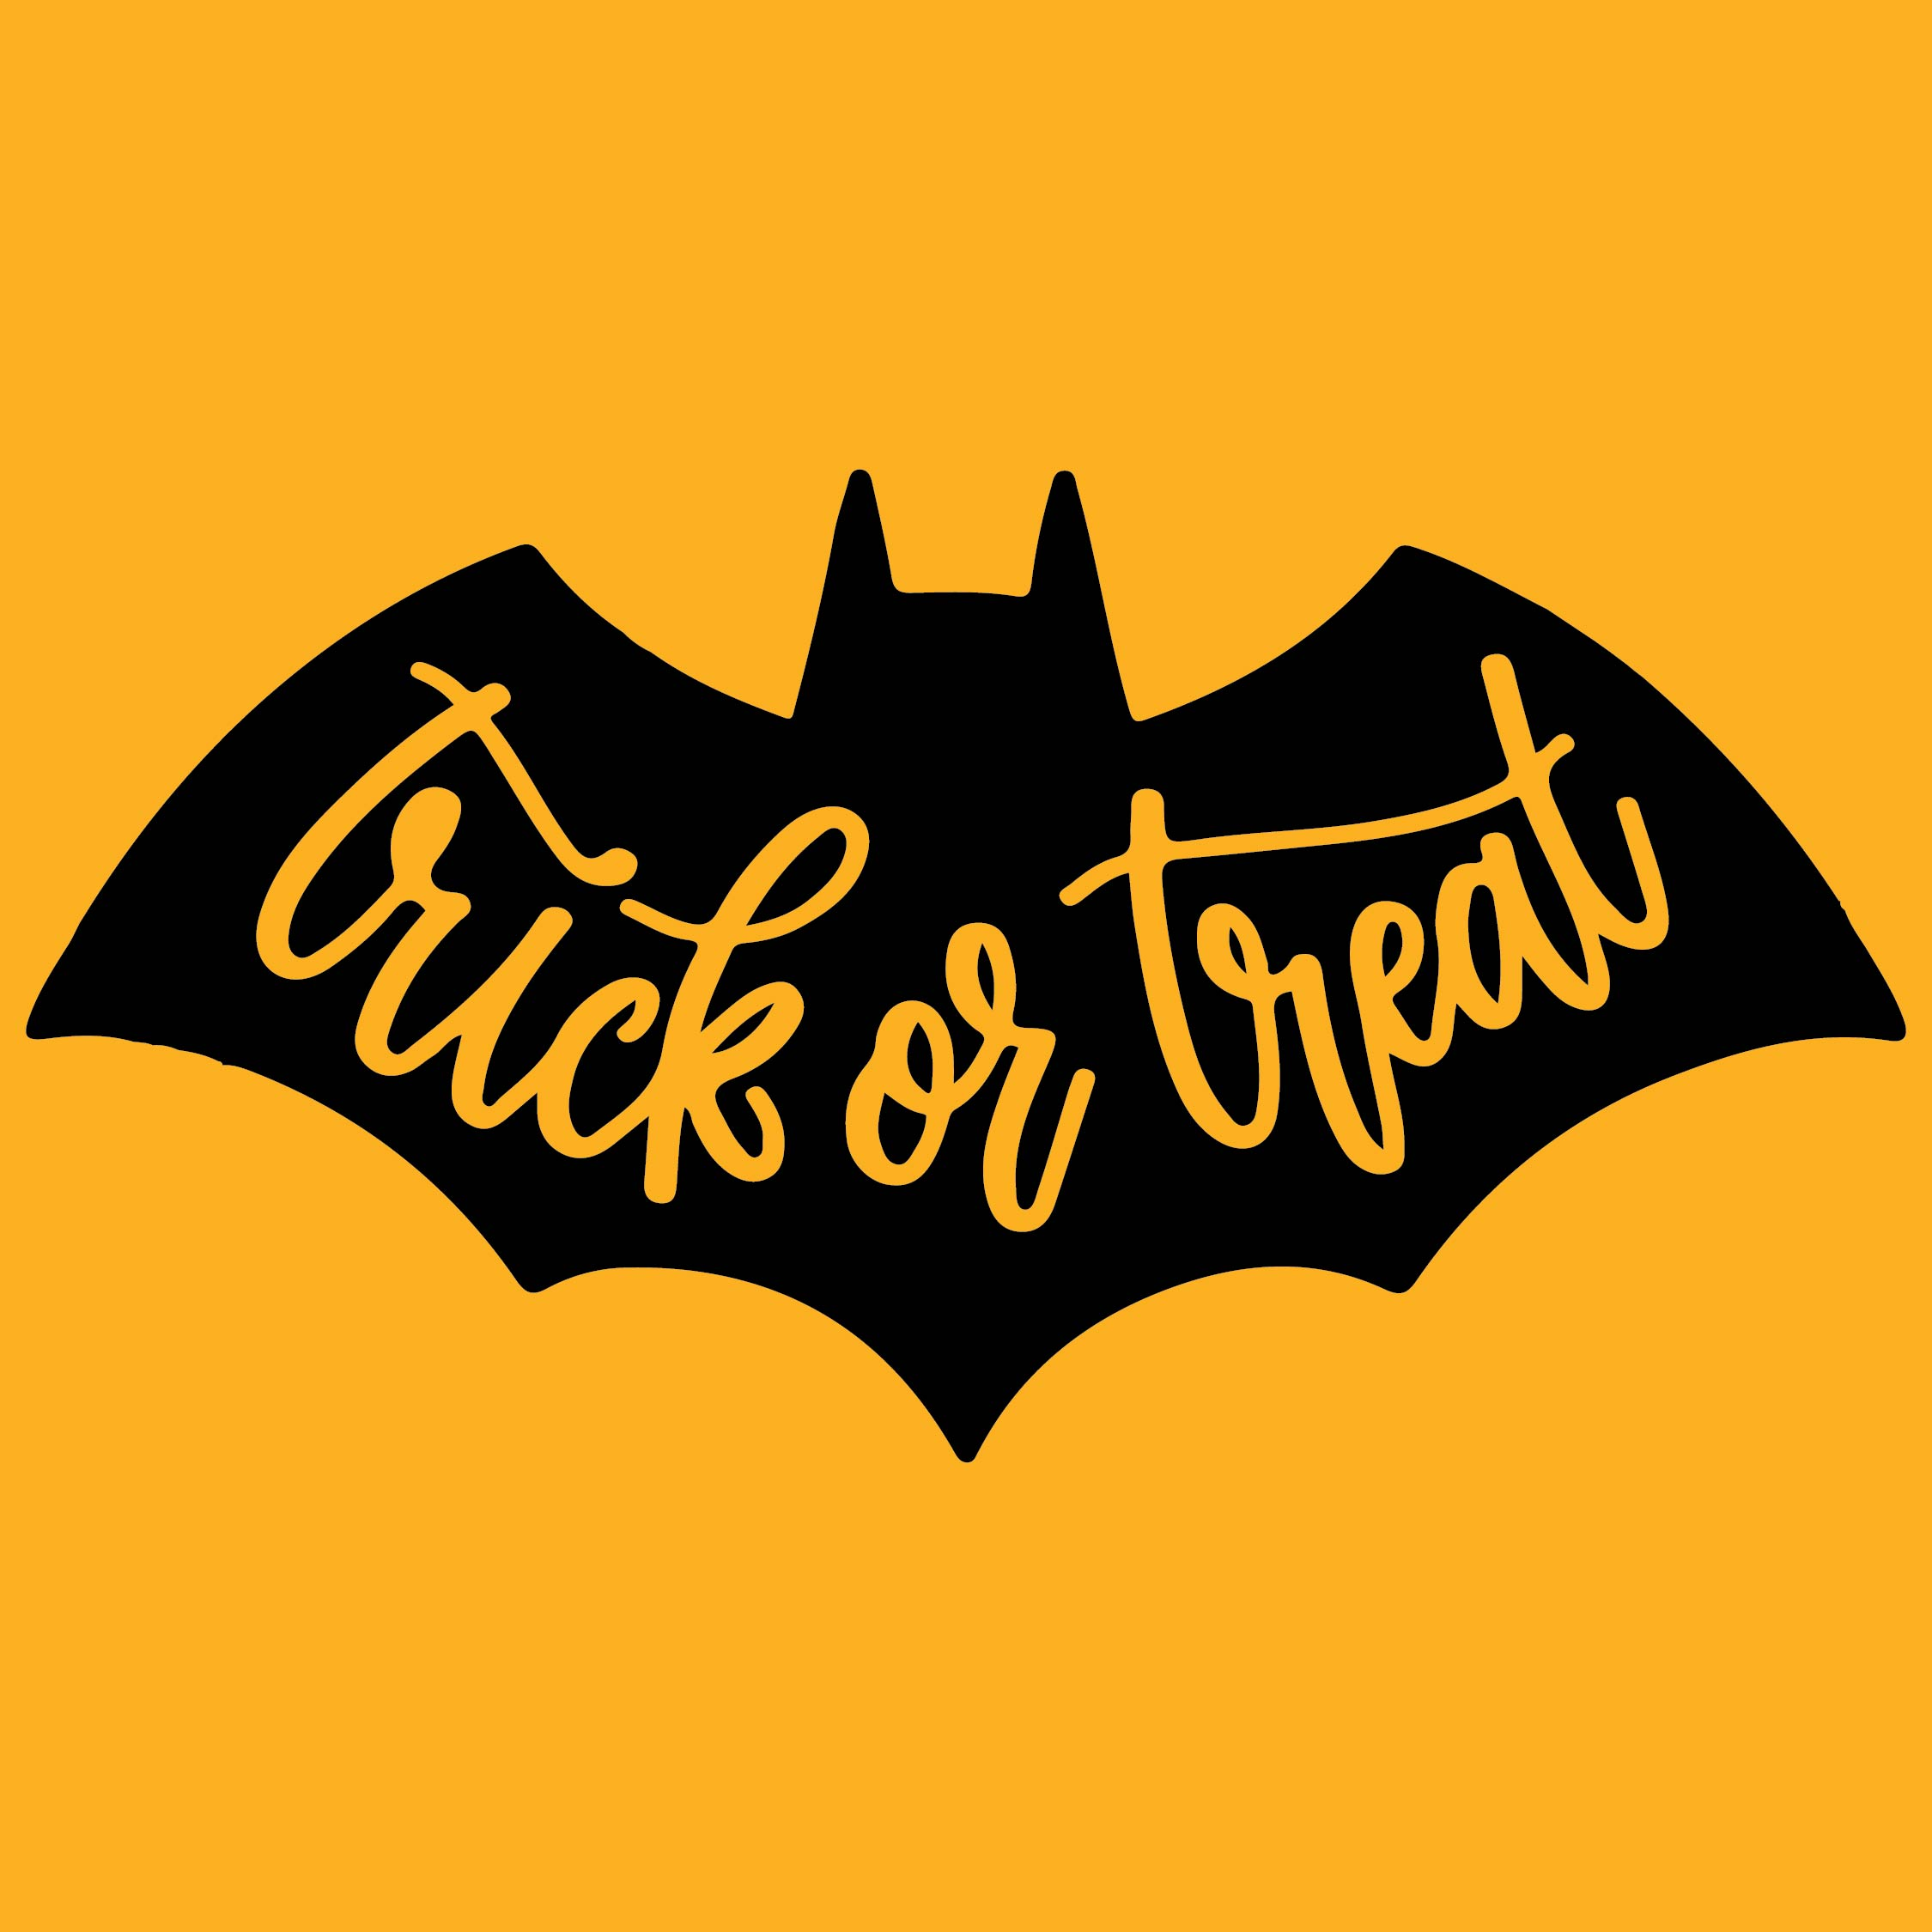 Printable Halloween Signs To Print